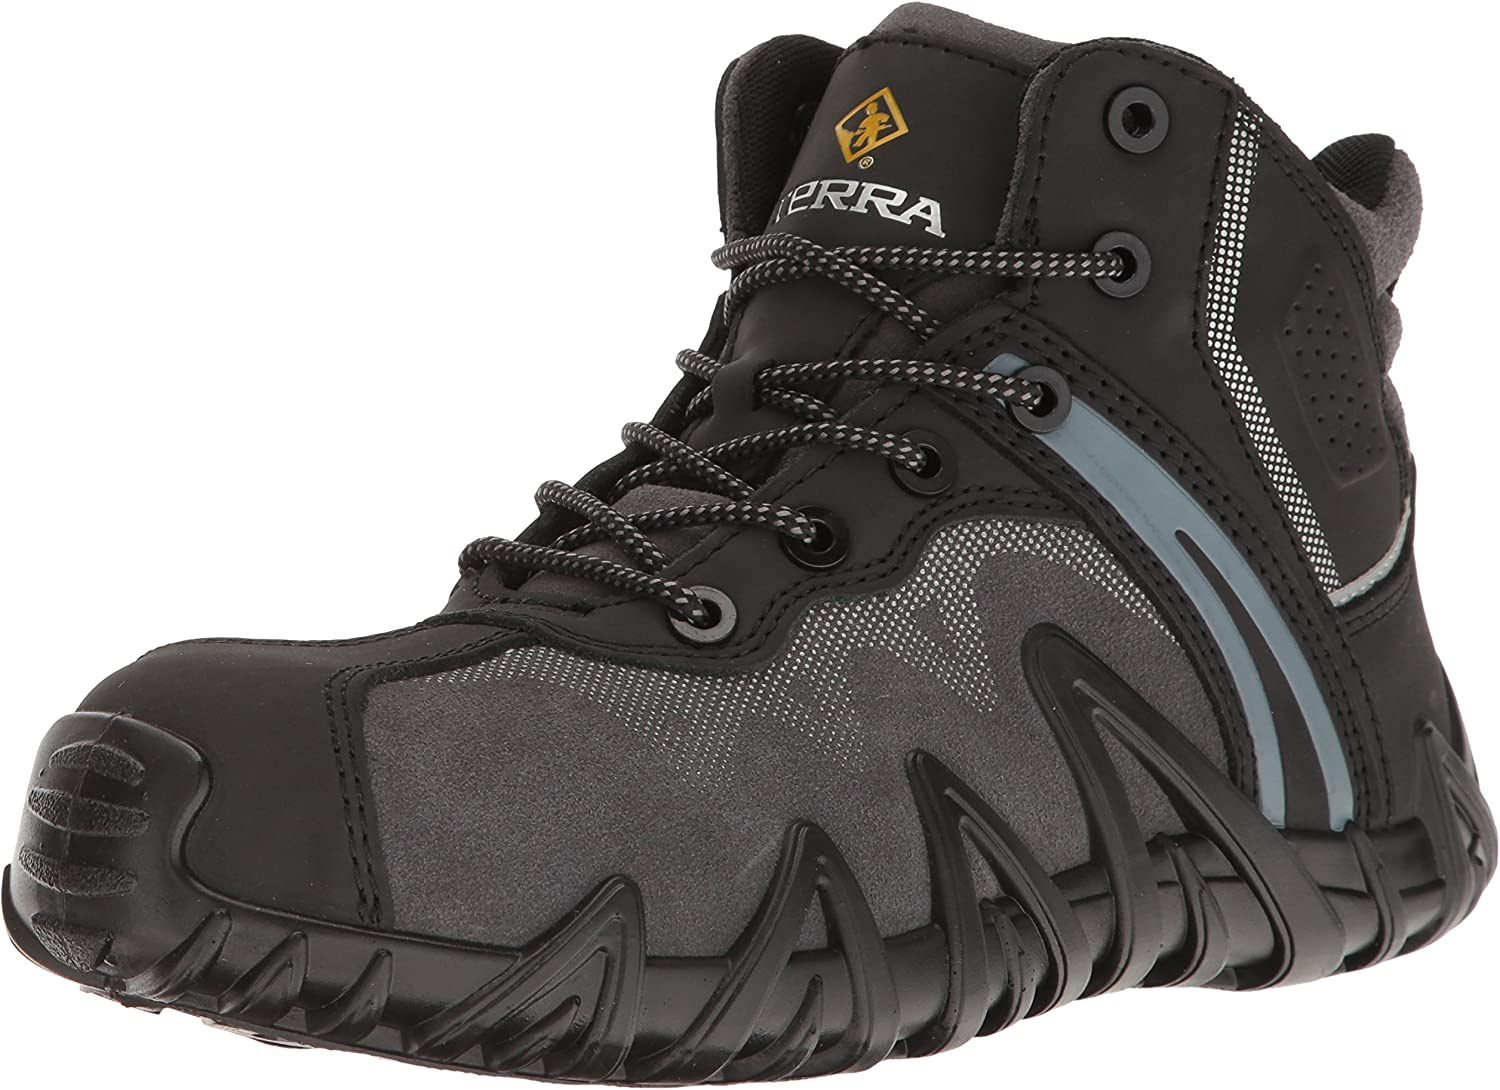 Terra Mens Venom MID Cut Work shoes